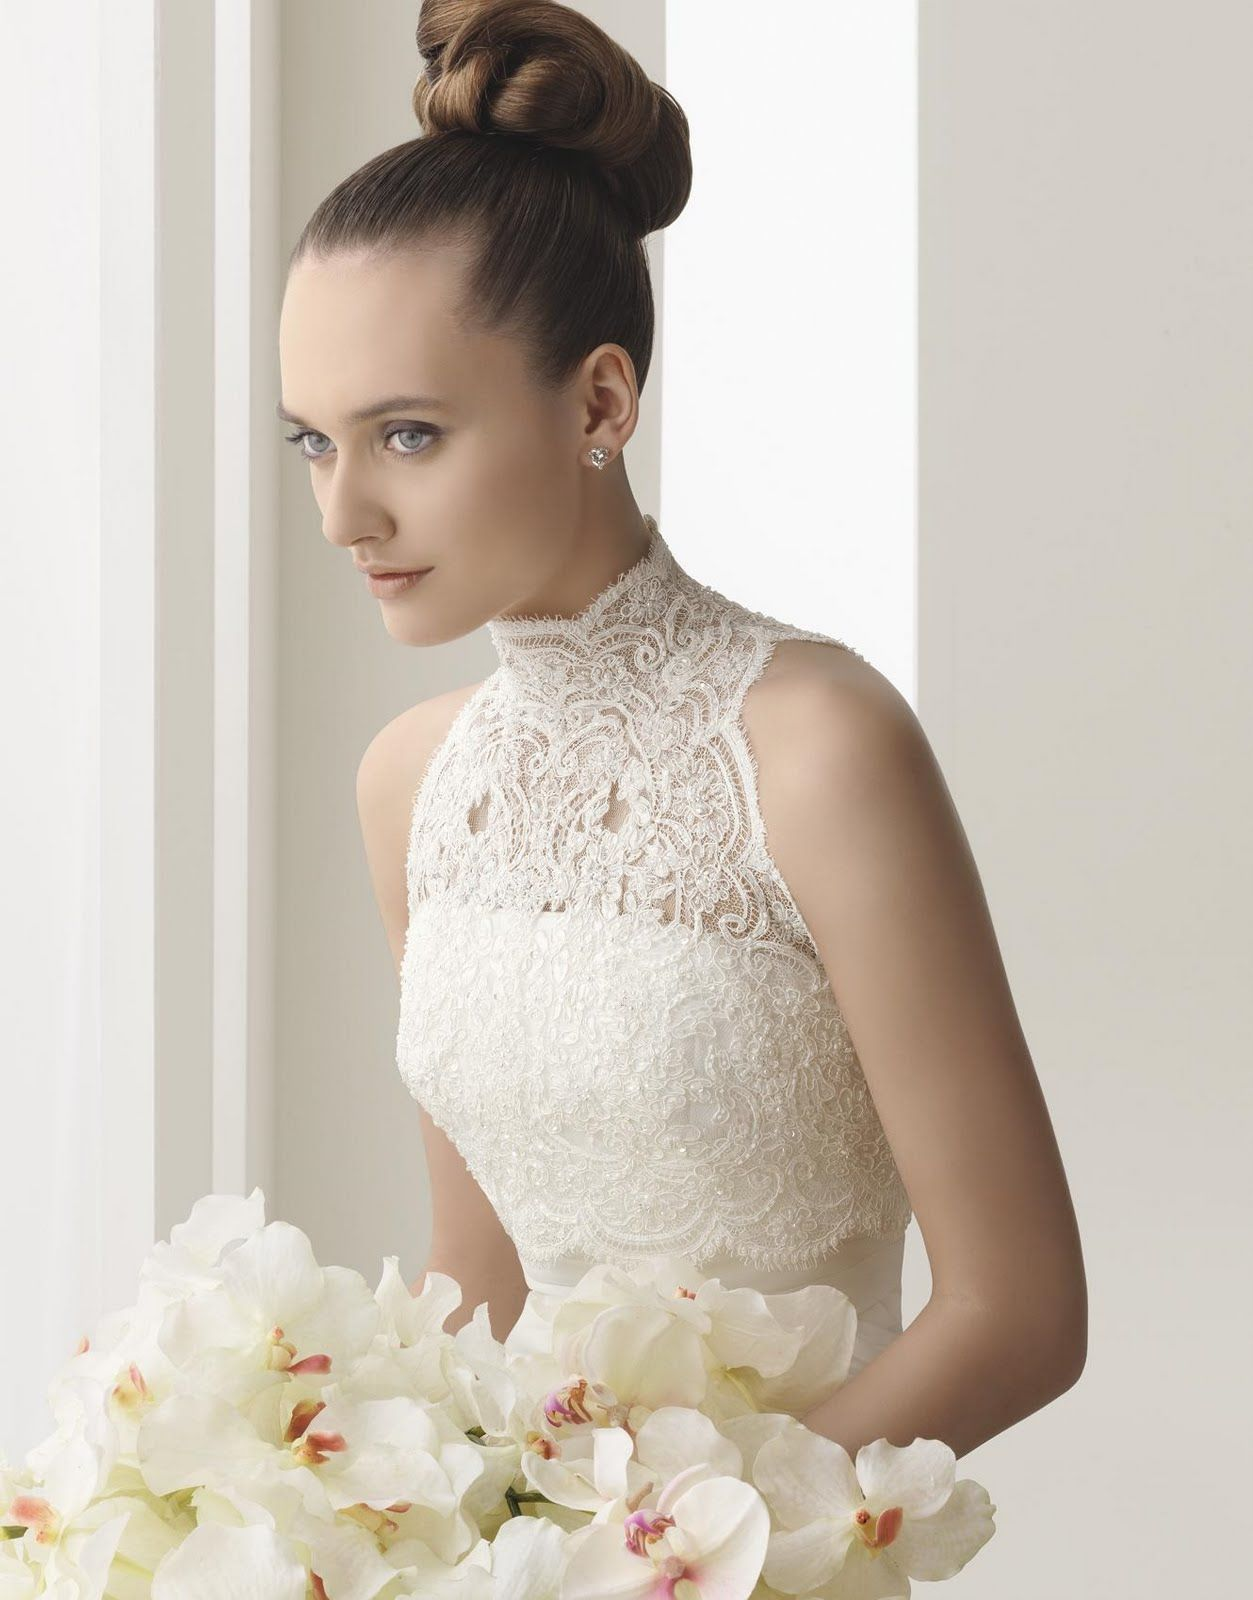 Iuve always thought lace collars on wedding dresses were magnificent